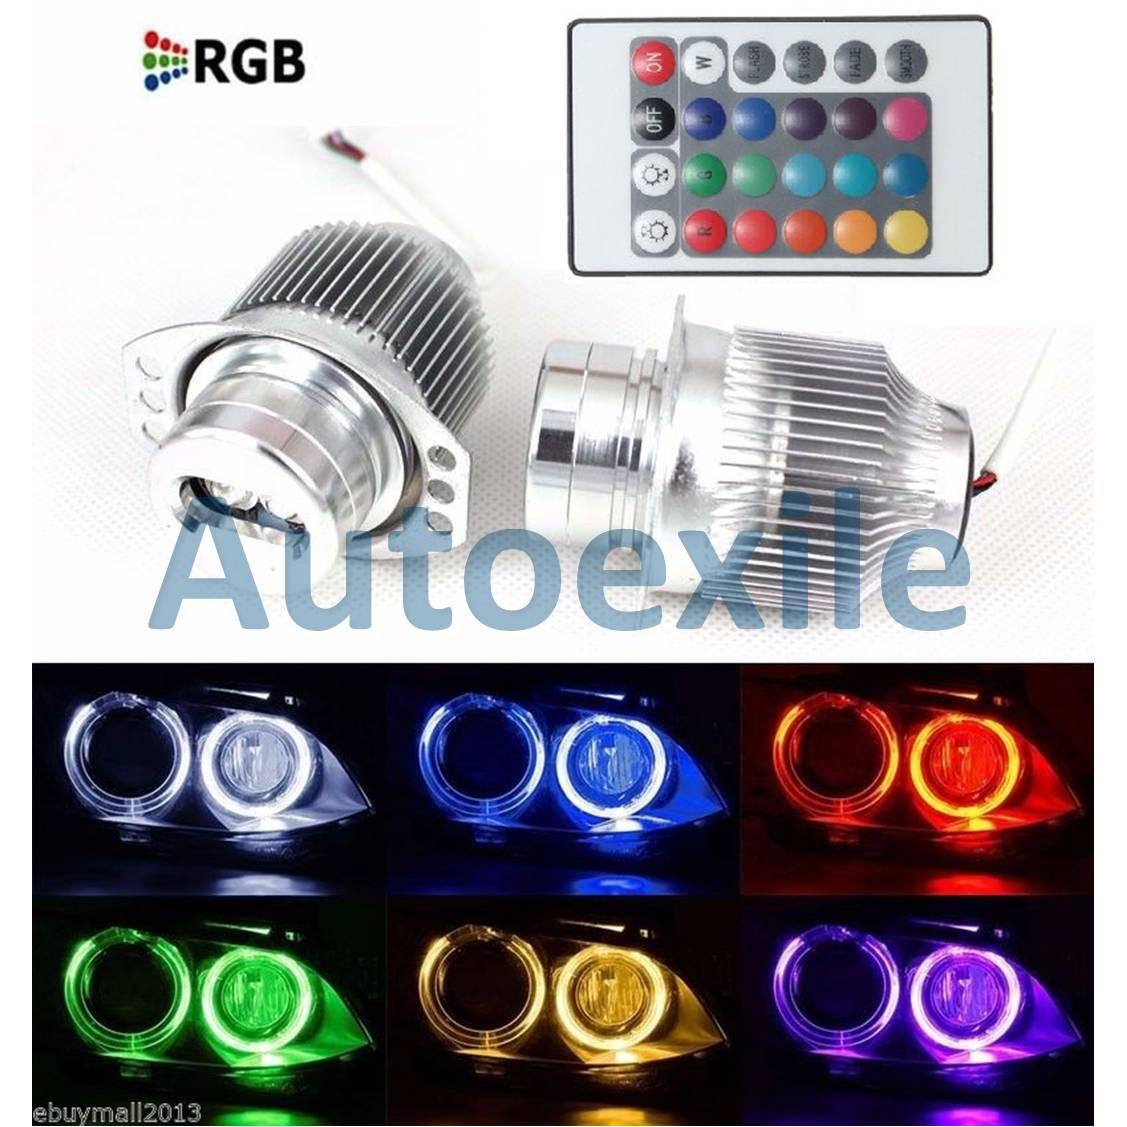 Angel Eyes LED RGB Lampu Bimmer Warna Warni Khusus Mobil BMW E90 E91 2005-2008, 3 Series LCI 2009